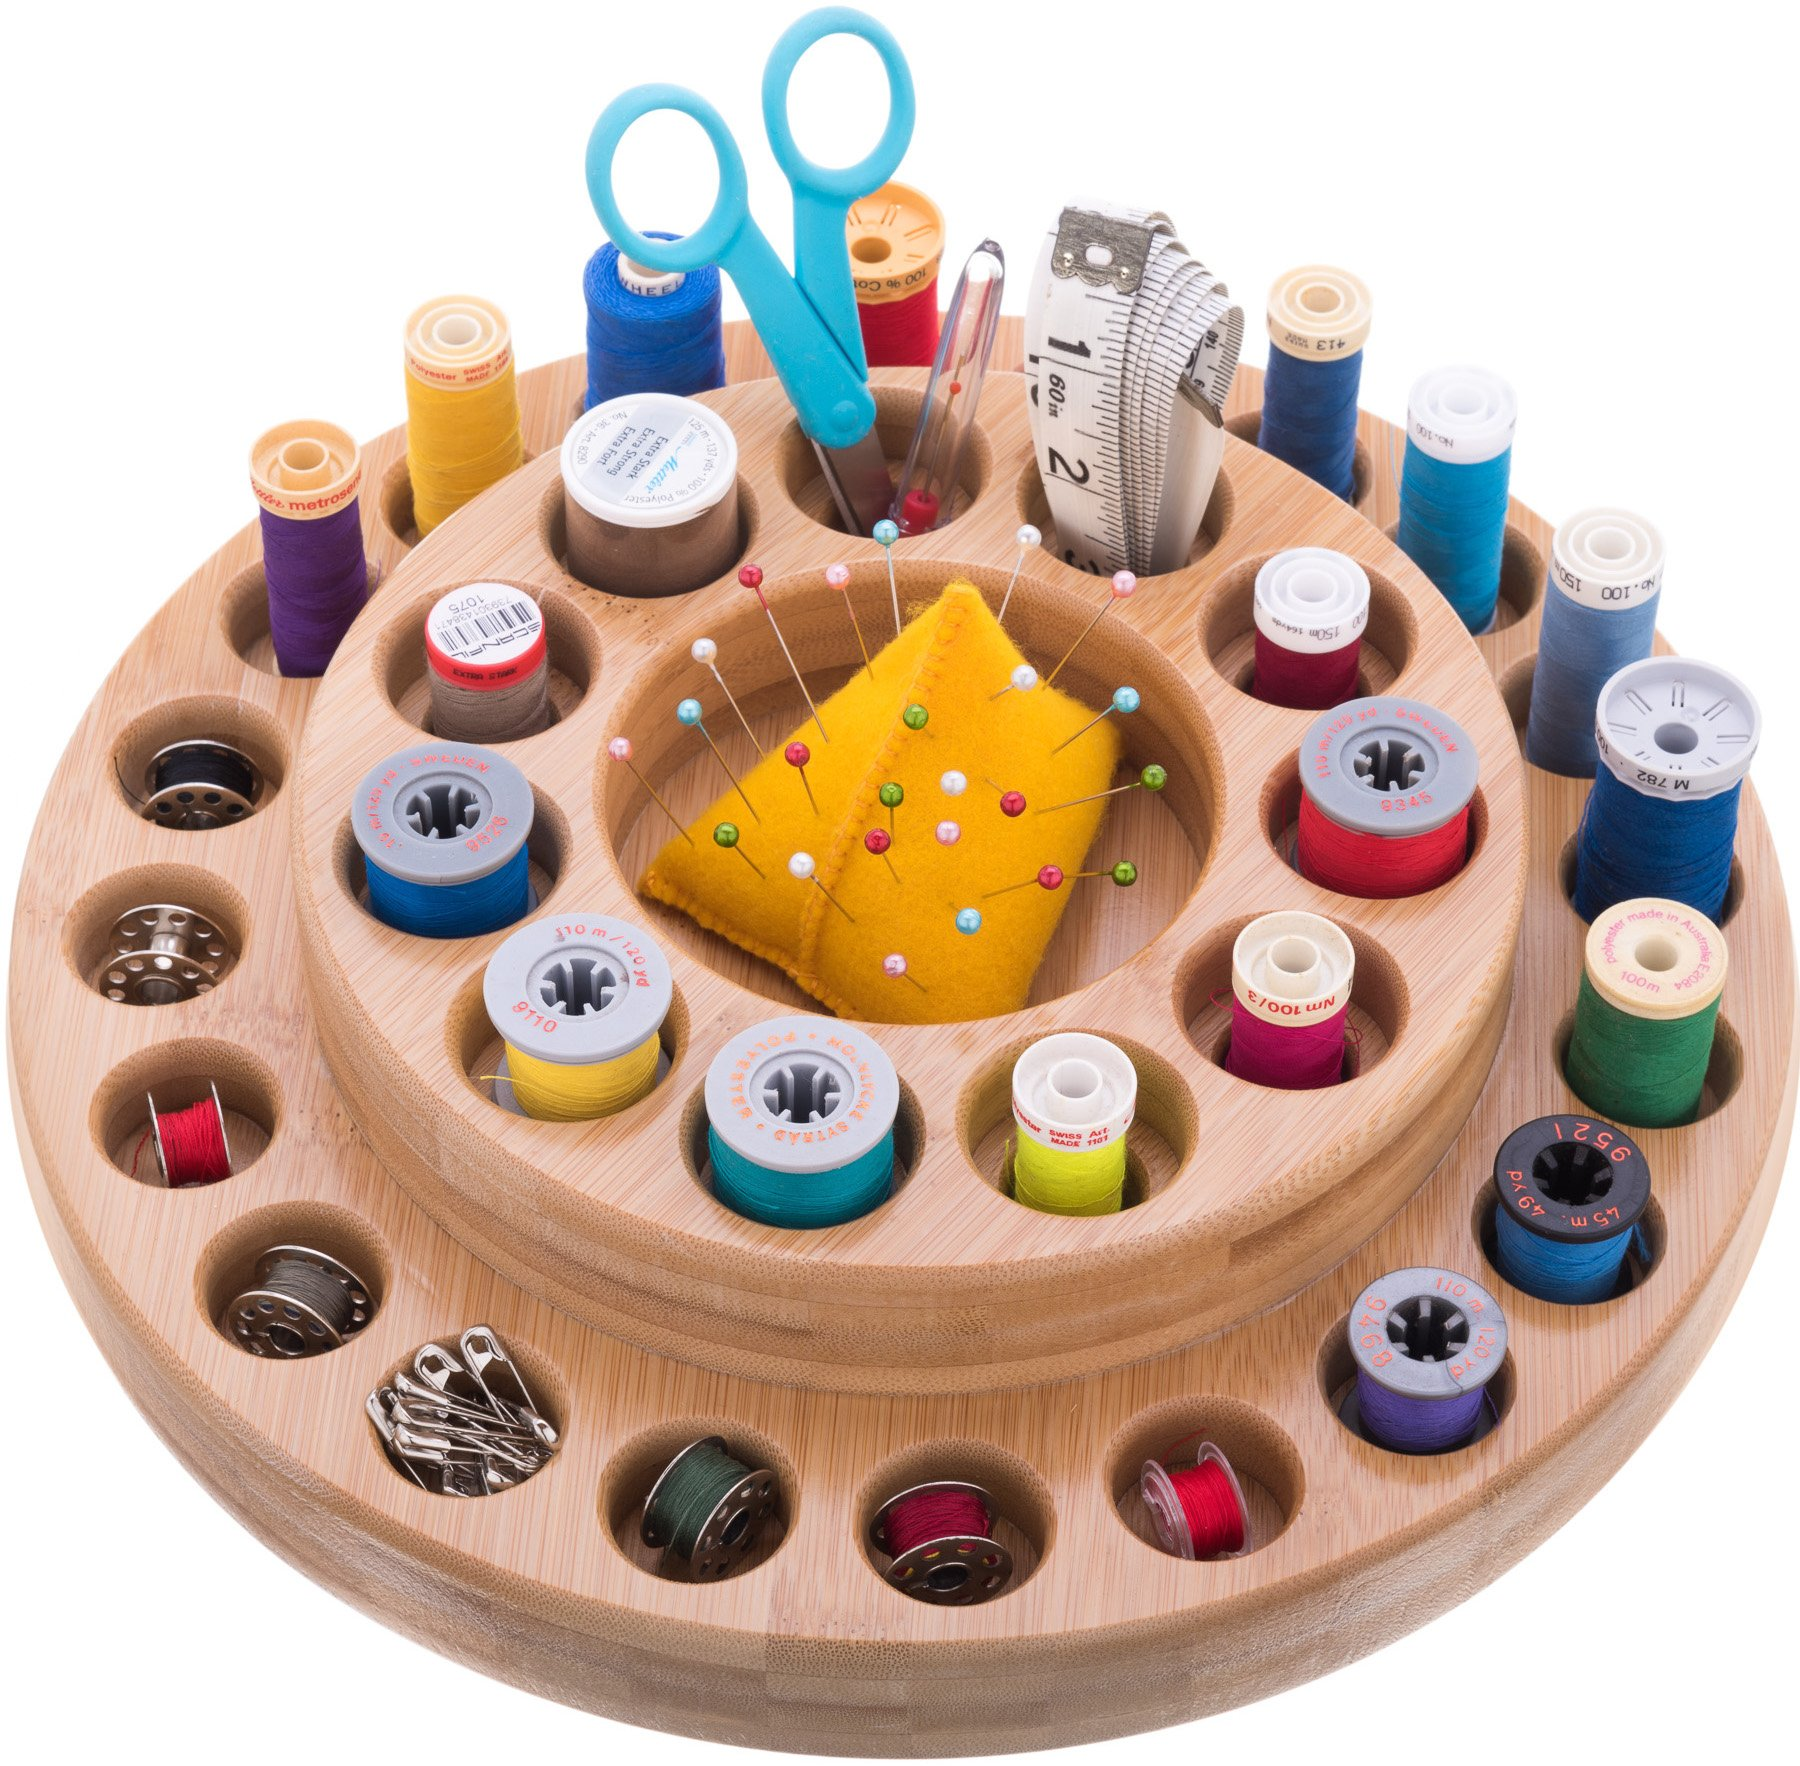 Essential Oil Wooden Storage Lazy Susan - use for sewing supplies